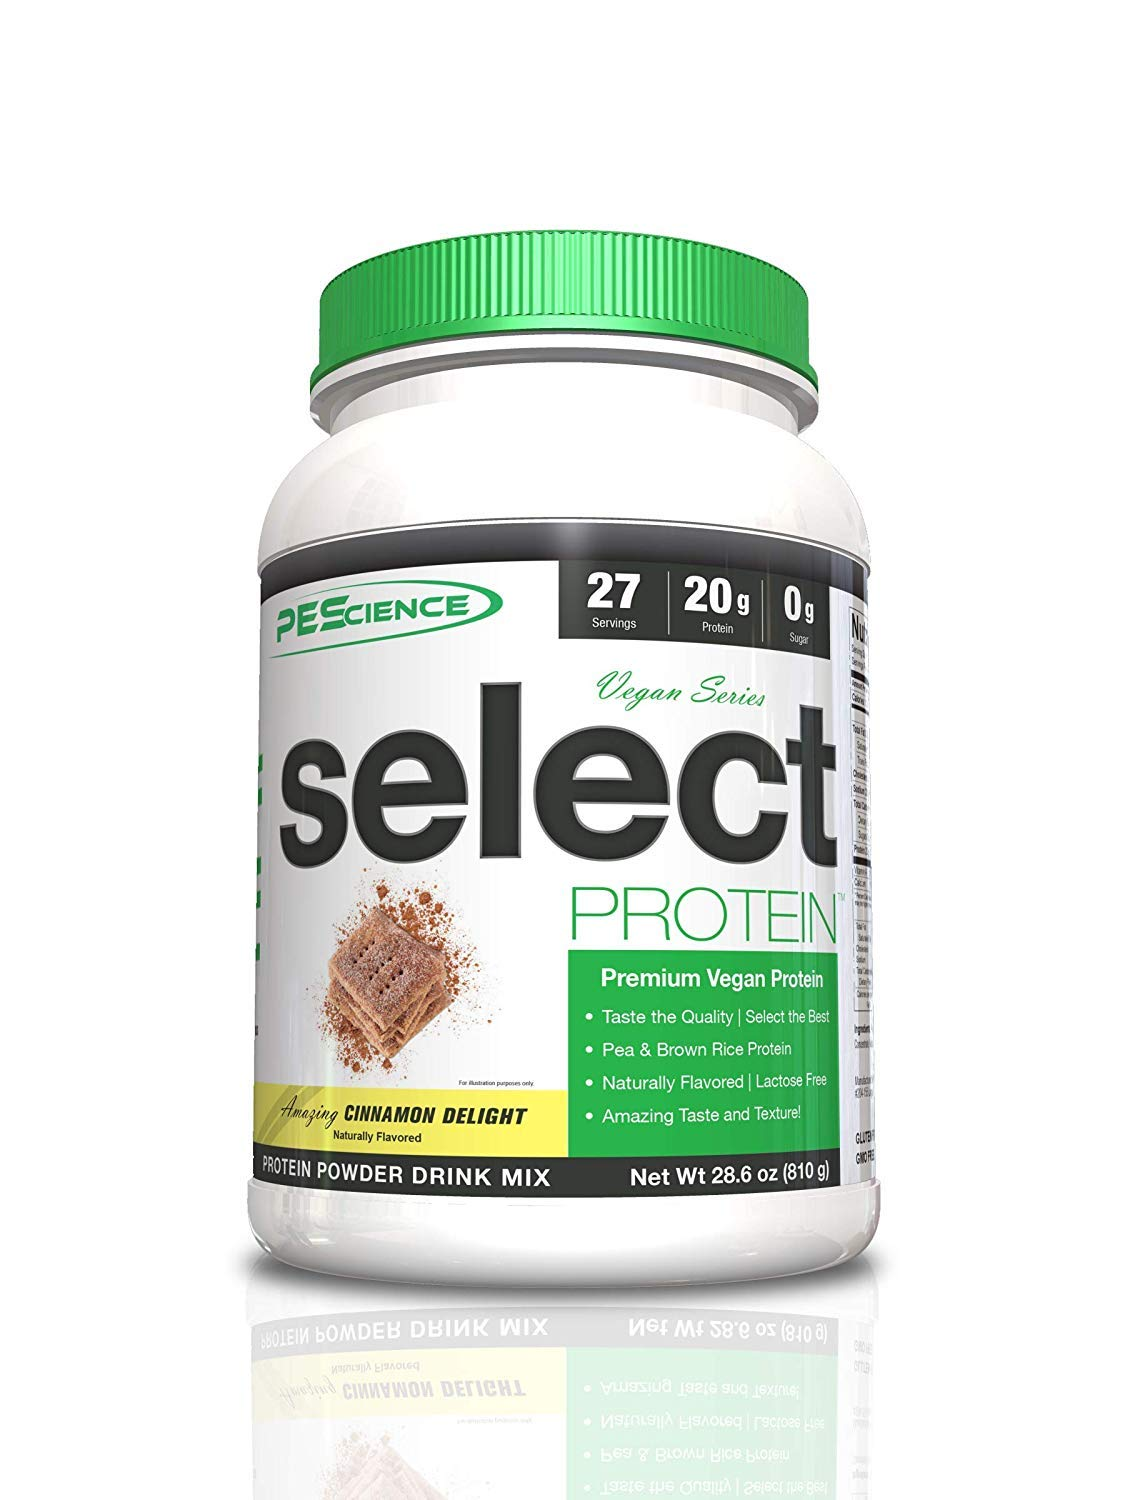 PEScience Select Vegan Protein Powder, Cinnamon Delight, 27 Serving (2 Pack), Premium Pea and Brown Rice Protein Blend